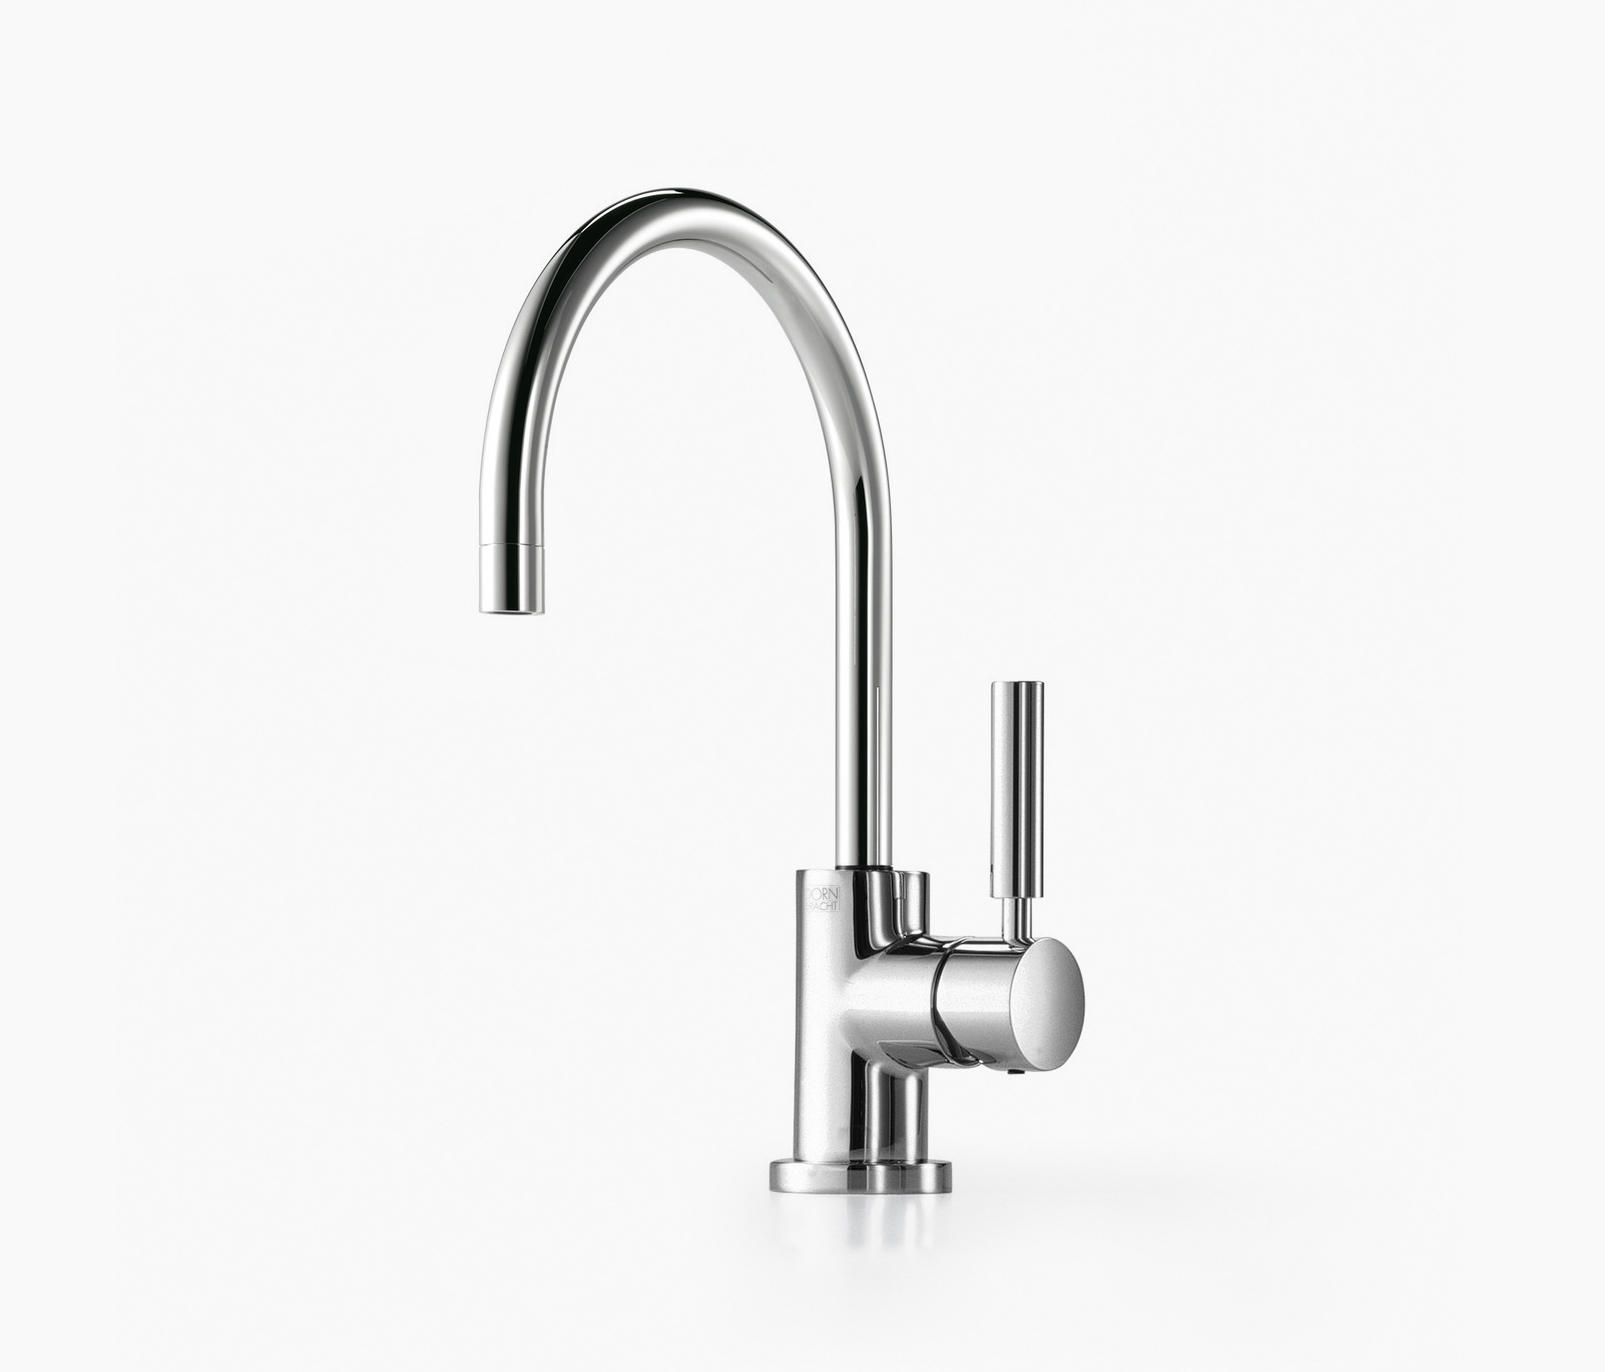 tara classic single lever mixer kitchen taps from dornbracht architonic. Black Bedroom Furniture Sets. Home Design Ideas